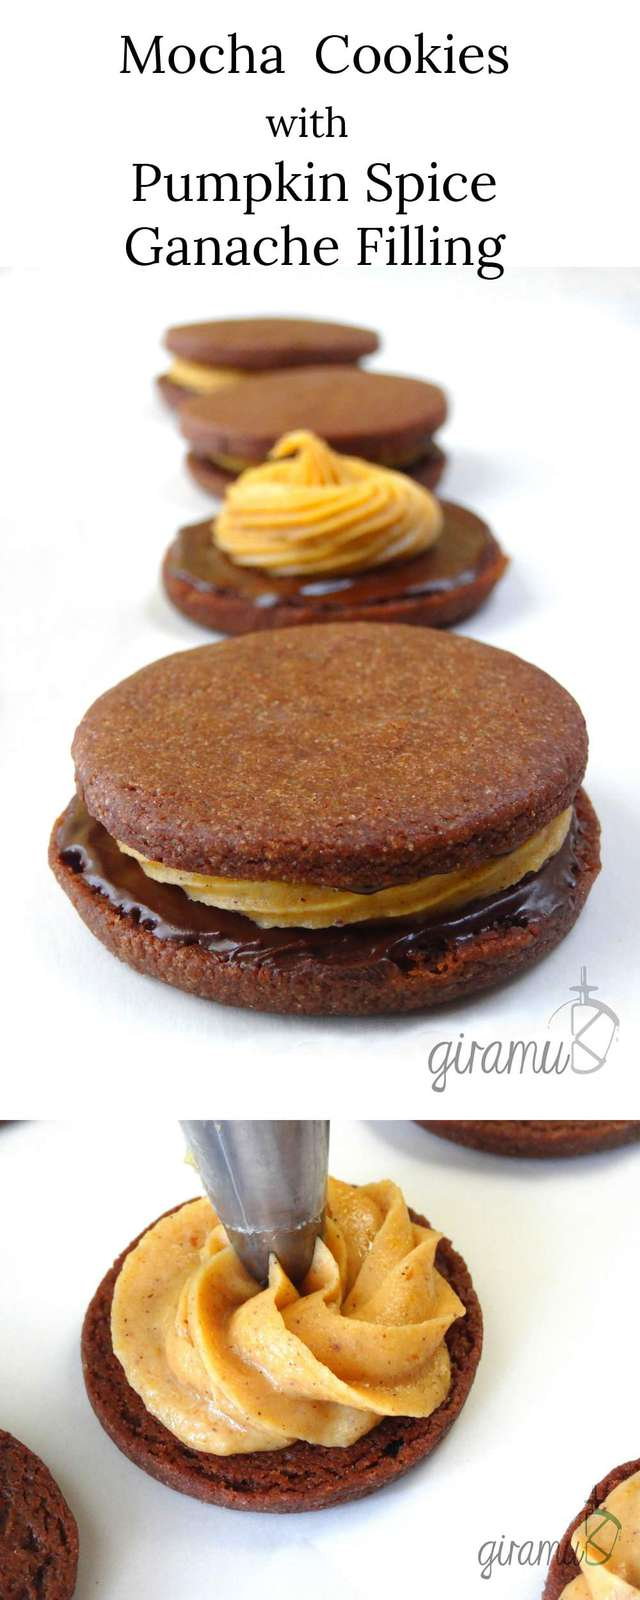 Mocha Cookies with Pumpkin Spice Ganache Cookies! Perfect cookies for Fall!